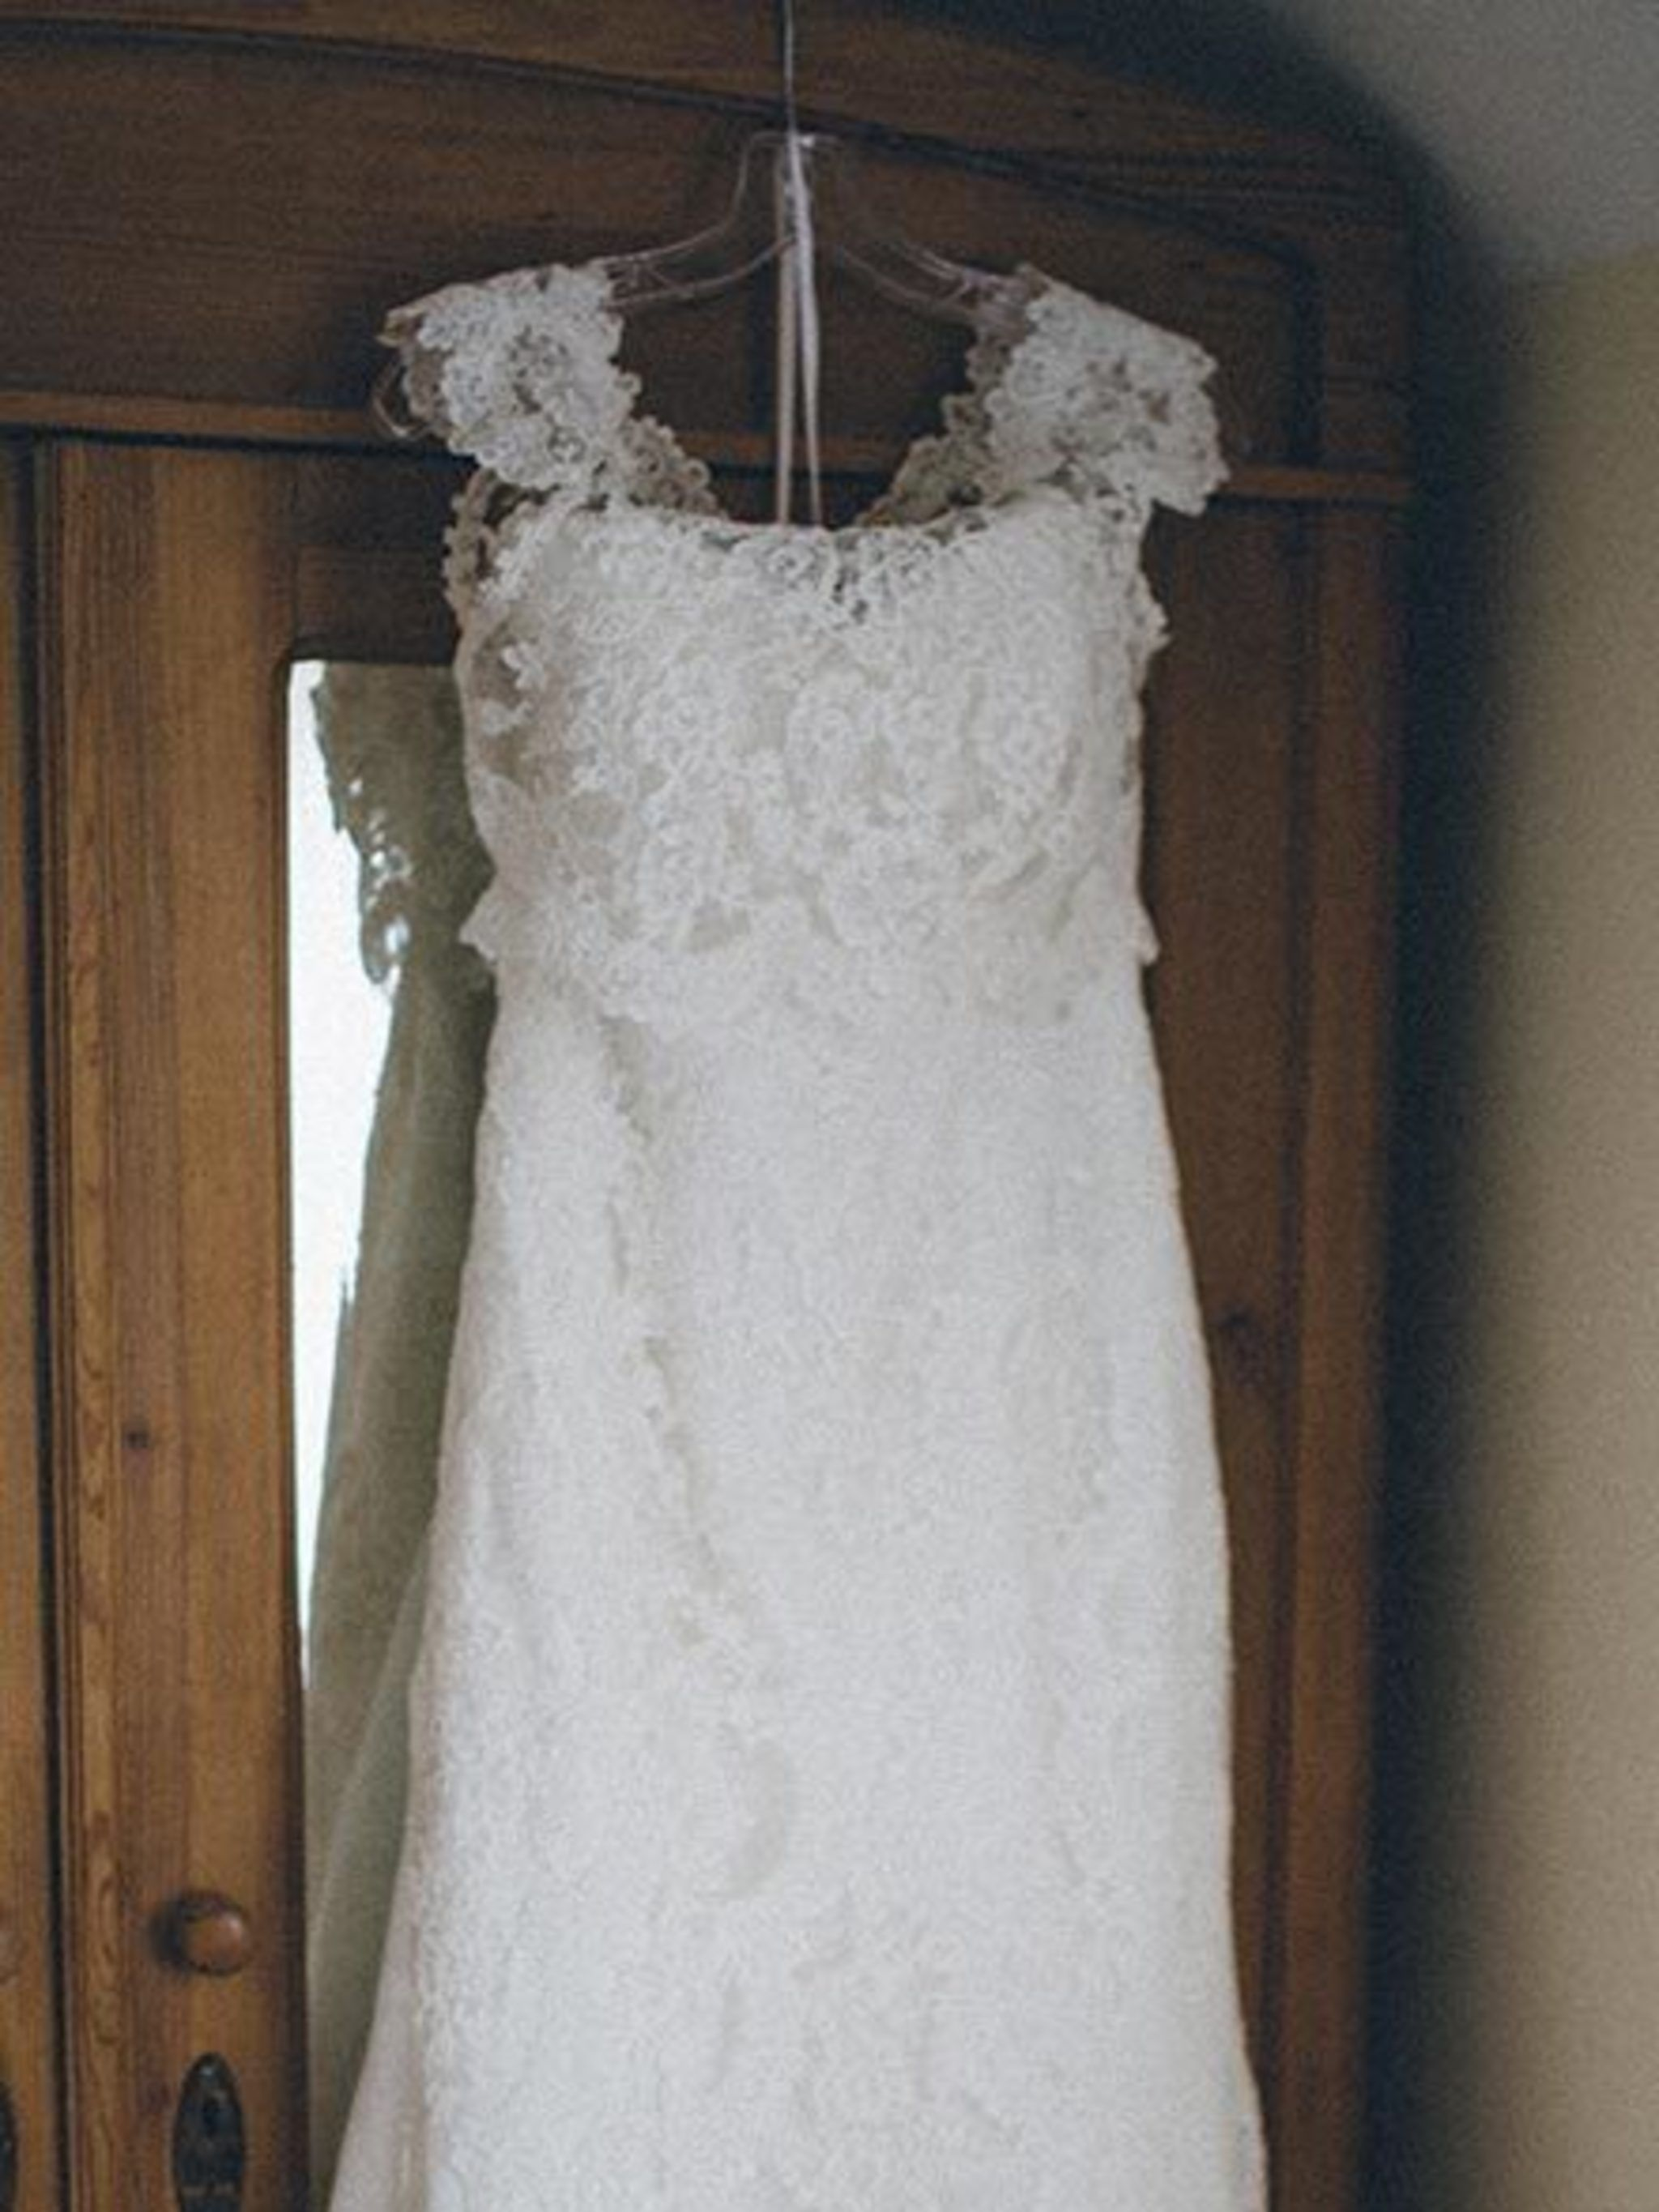 "<p>After some searching I found my wedding dress in a beautiful bridal boutique in rural Shropshire, <a href=""http://www.shropshirebrides.co.uk/"" target=""_blank"">Shropshire Country Brides</a>.</p>"